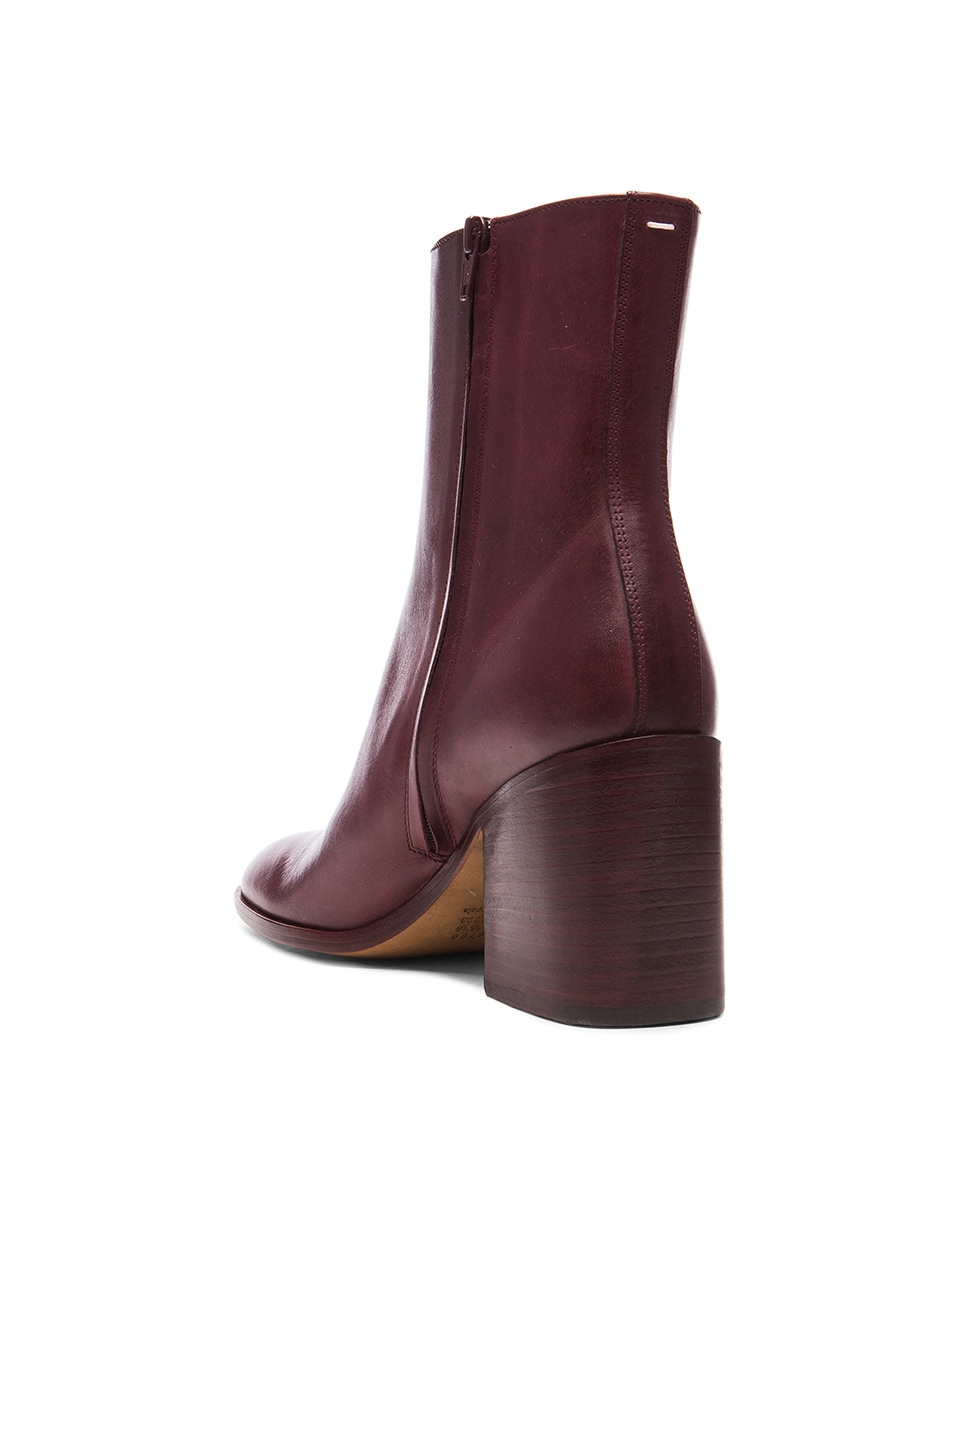 Image 3 of Maison Margiela Waxed Leather Booties in Bordeaux